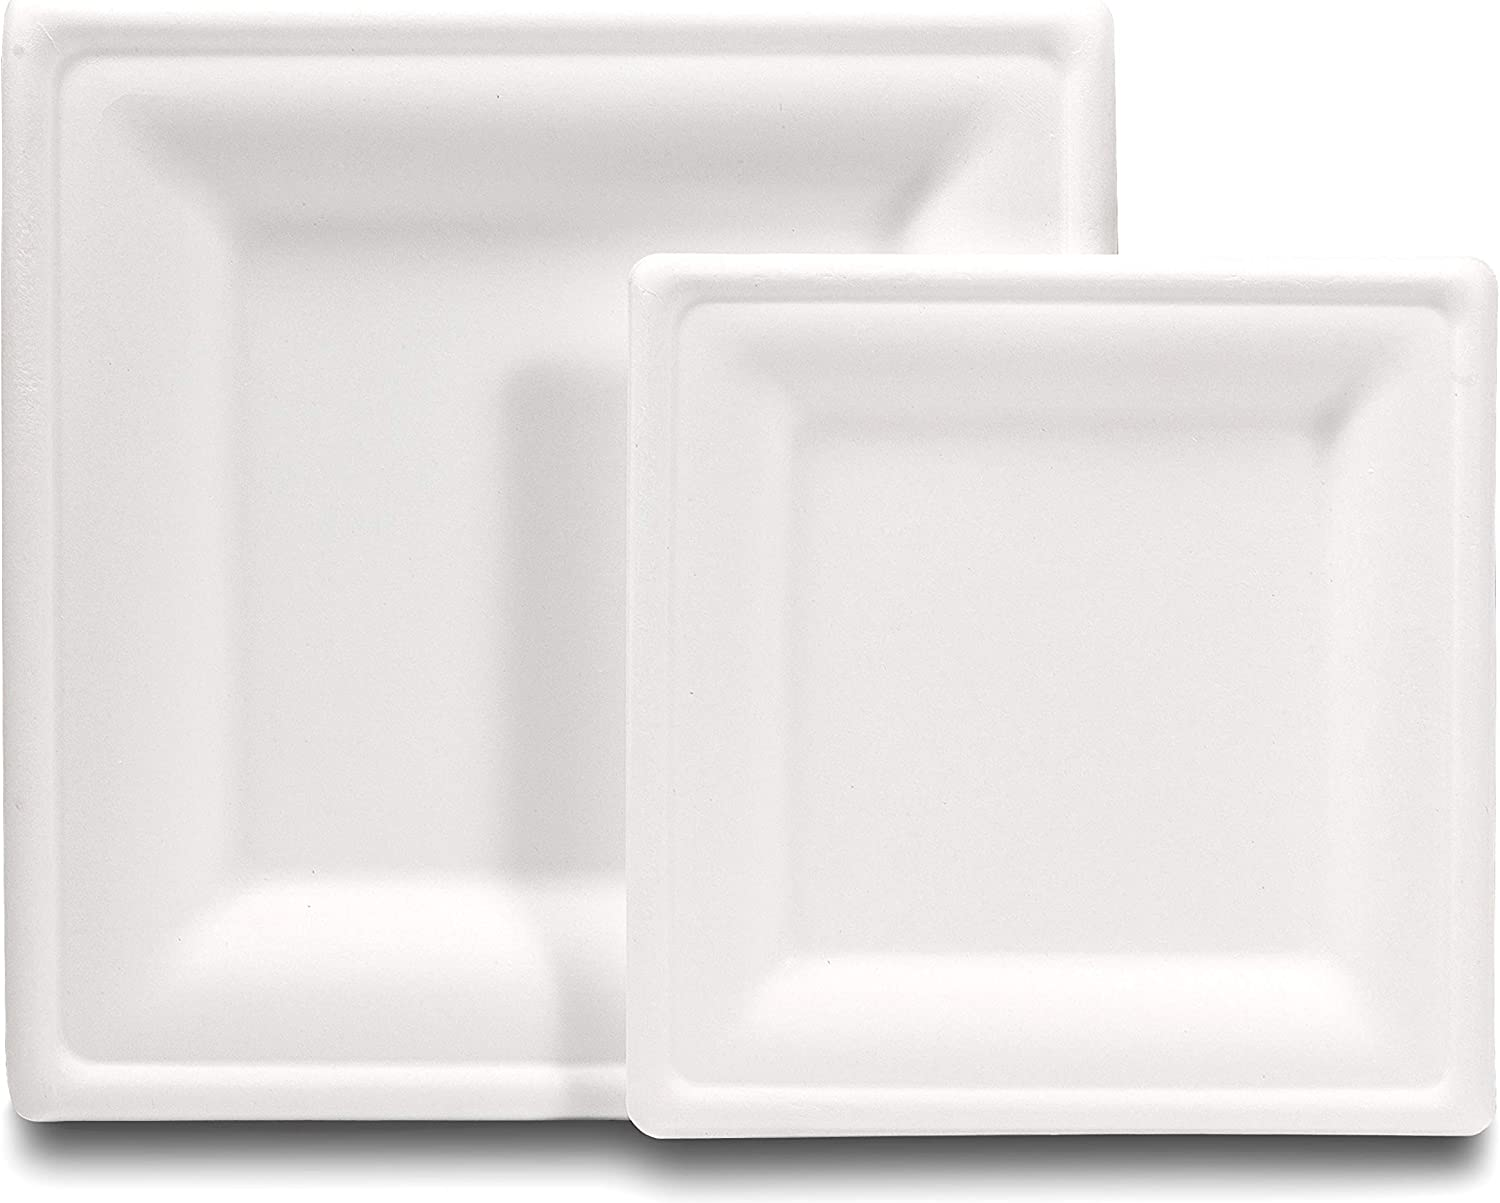 [100 COUNT] Compostable eco-friendly Square Plates 50 dinner plates and 50 dessert plates made from wheat straw fiber bagasse (sugarcane)